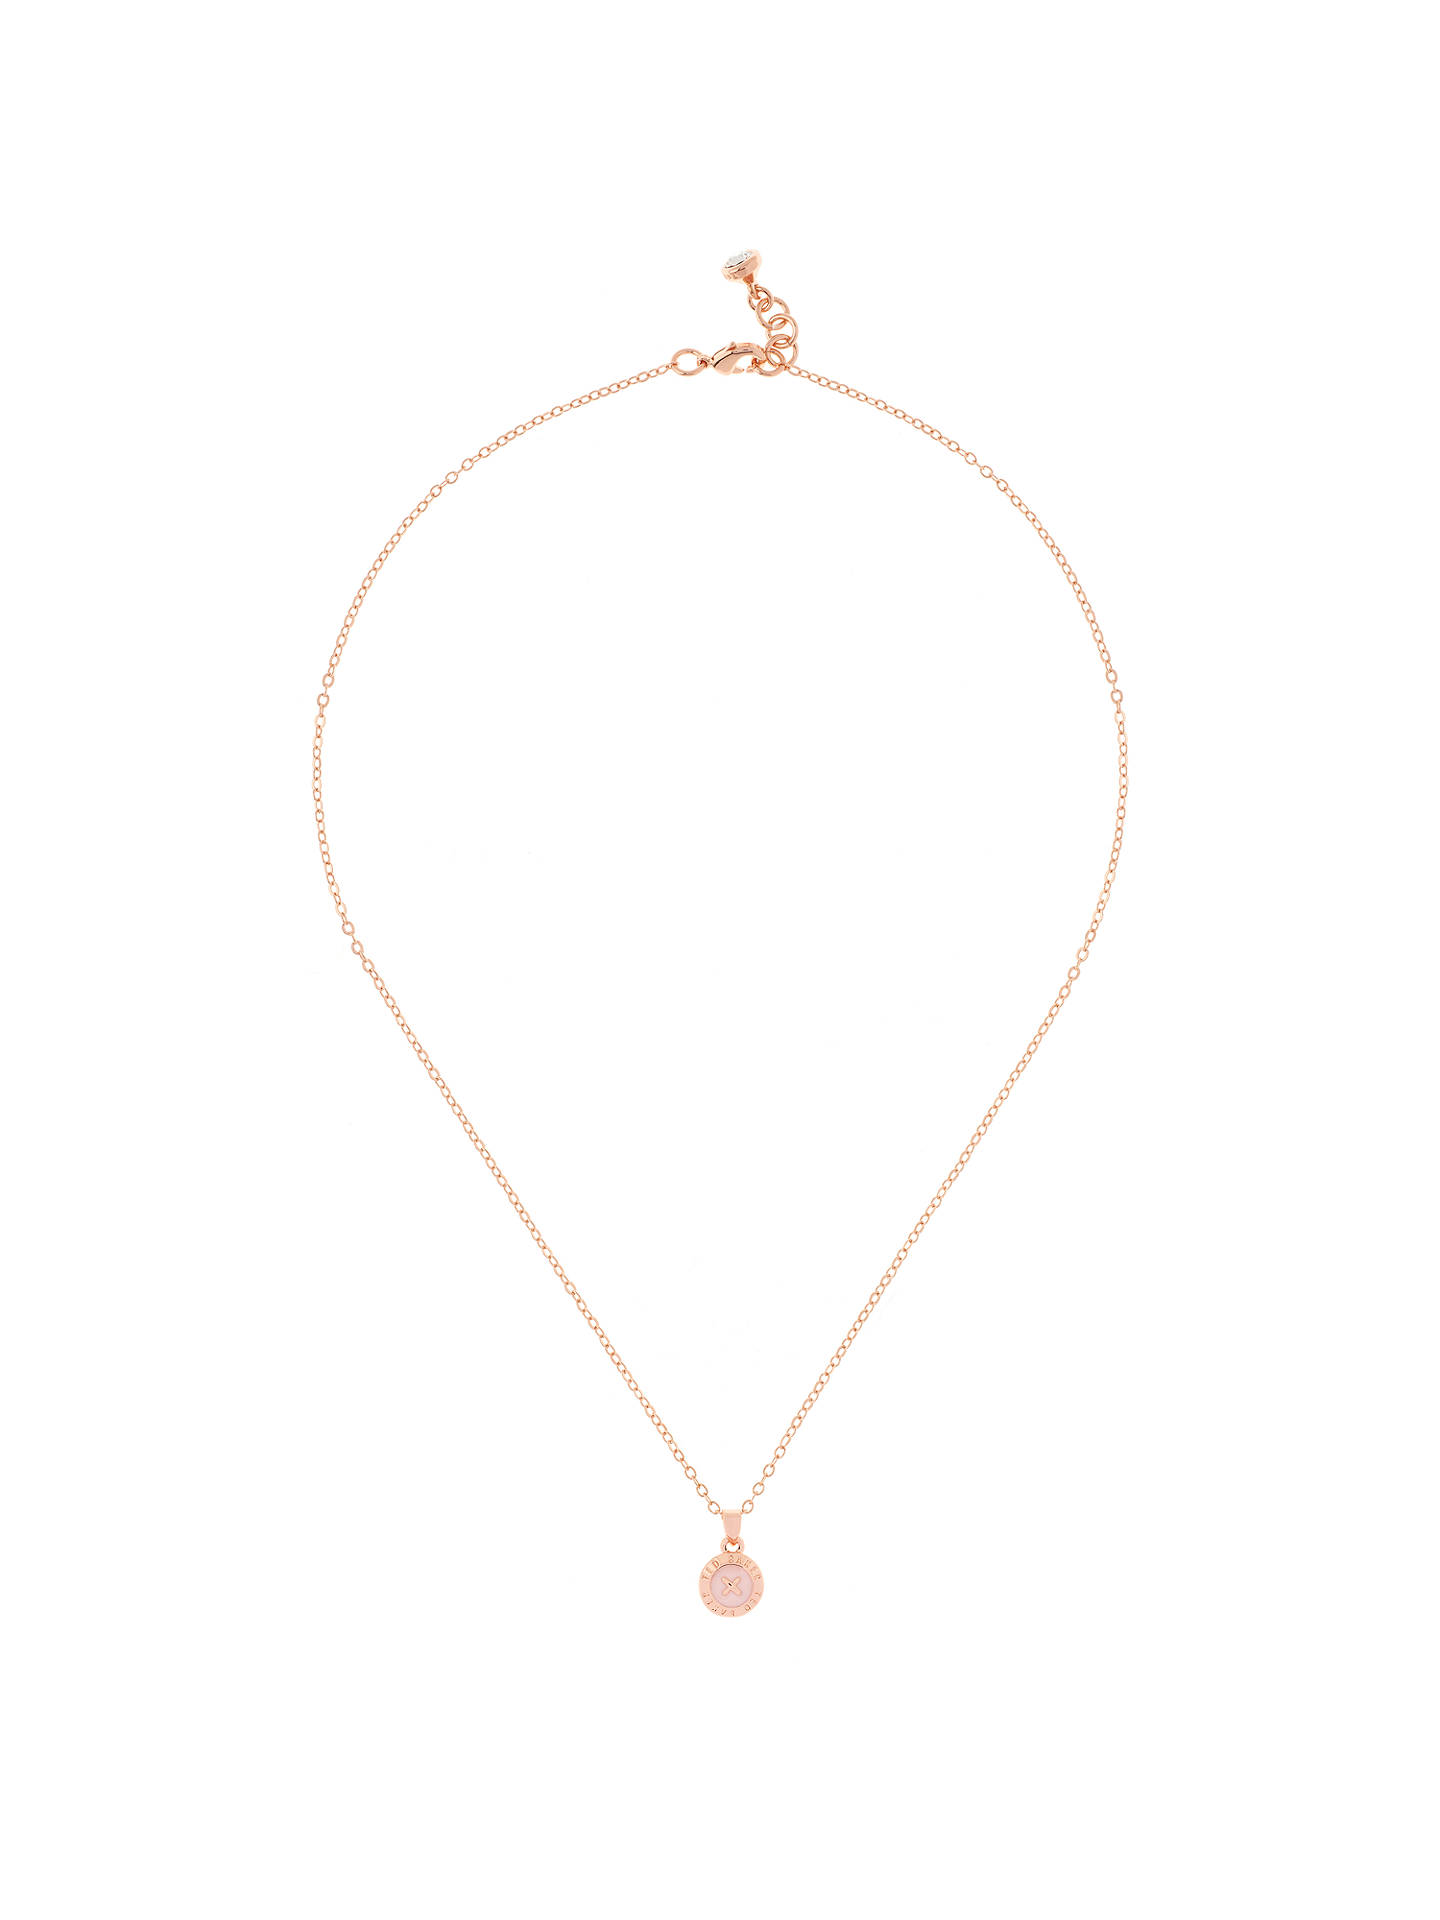 BuyTed Baker Elvina Enamel Mini Button Pendant Necklace, Rose Gold/Baby Pink Online at johnlewis.com